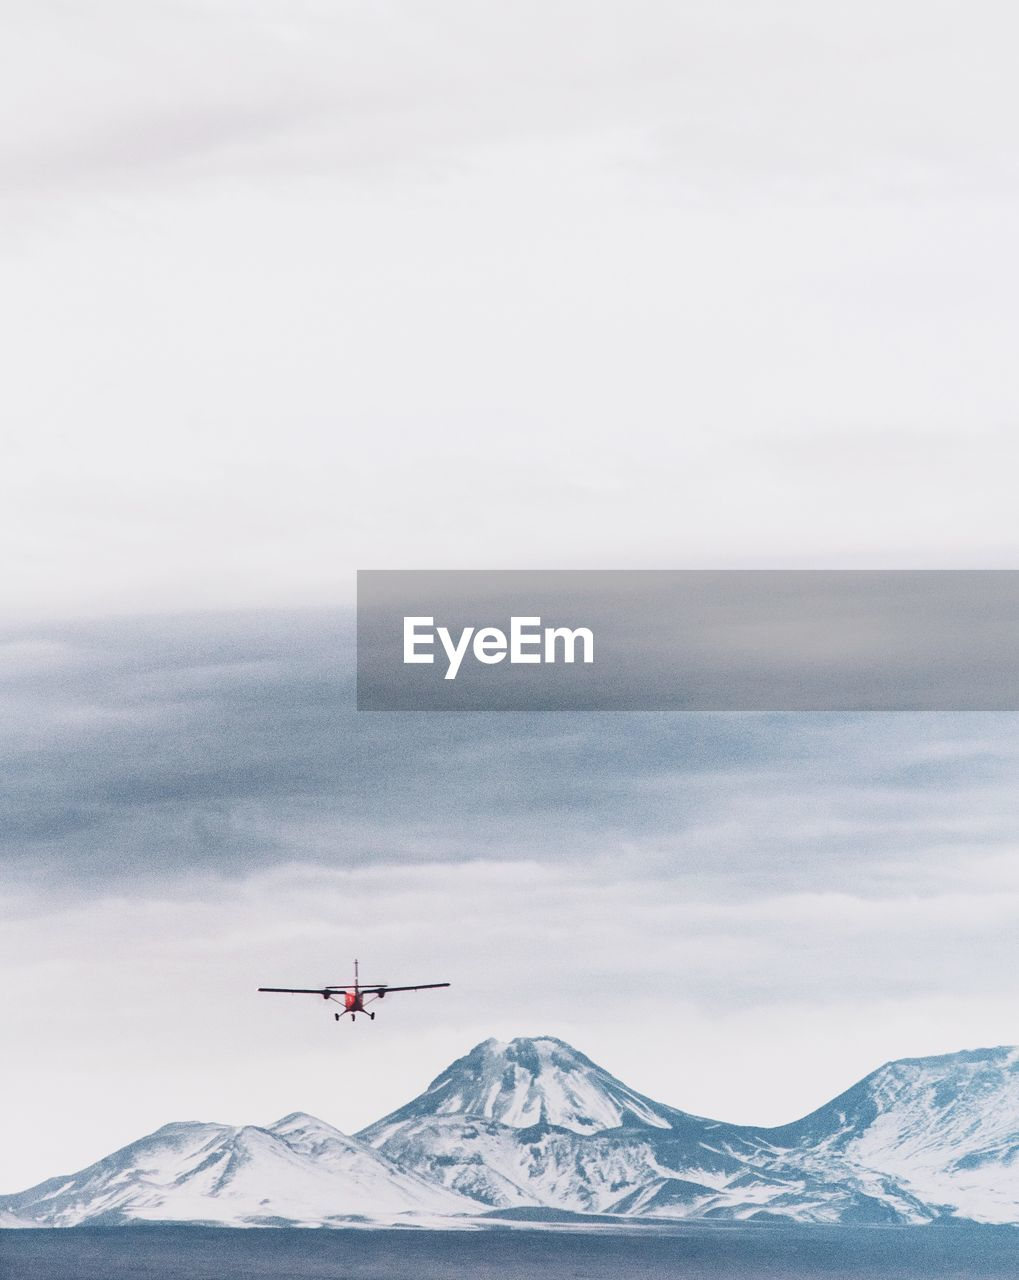 sky, mountain, snow, winter, cold temperature, air vehicle, cloud - sky, transportation, scenics - nature, beauty in nature, mode of transportation, airplane, snowcapped mountain, mountain range, helicopter, flying, nature, day, travel, no people, outdoors, aerospace industry